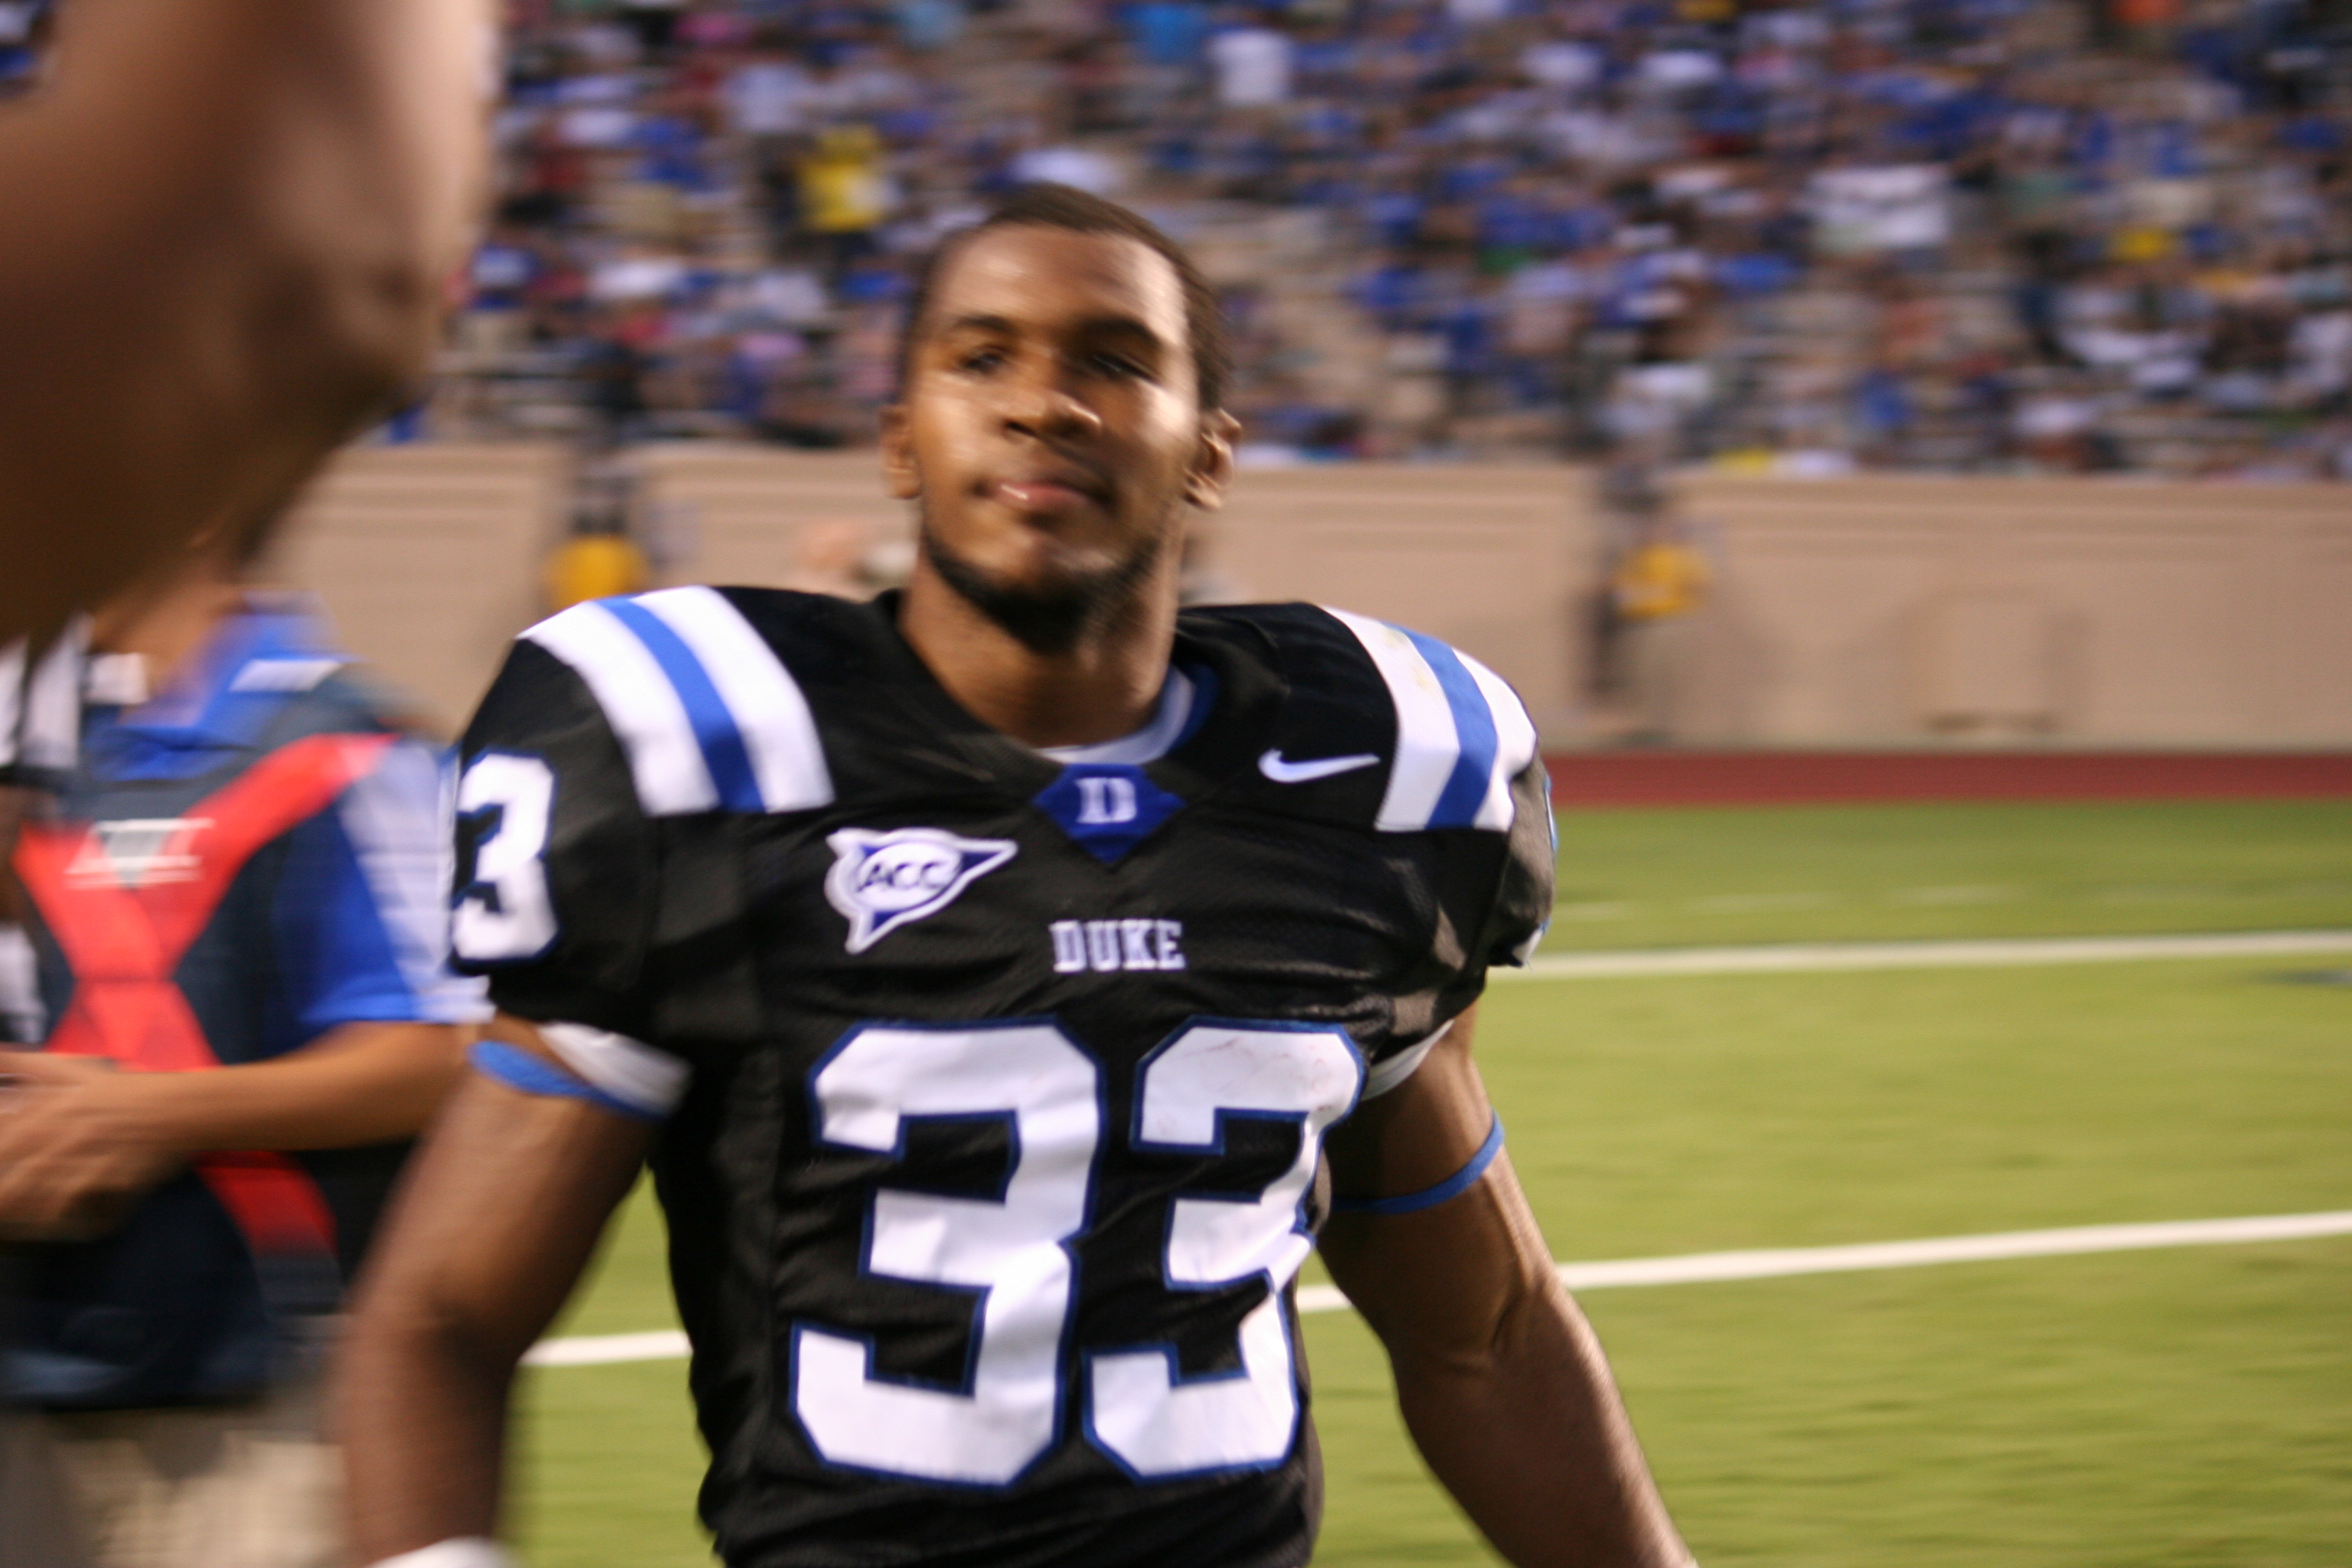 Senior Desmond Scott leads the Blue Devils against his hometown rival NCCU. BDN Photo